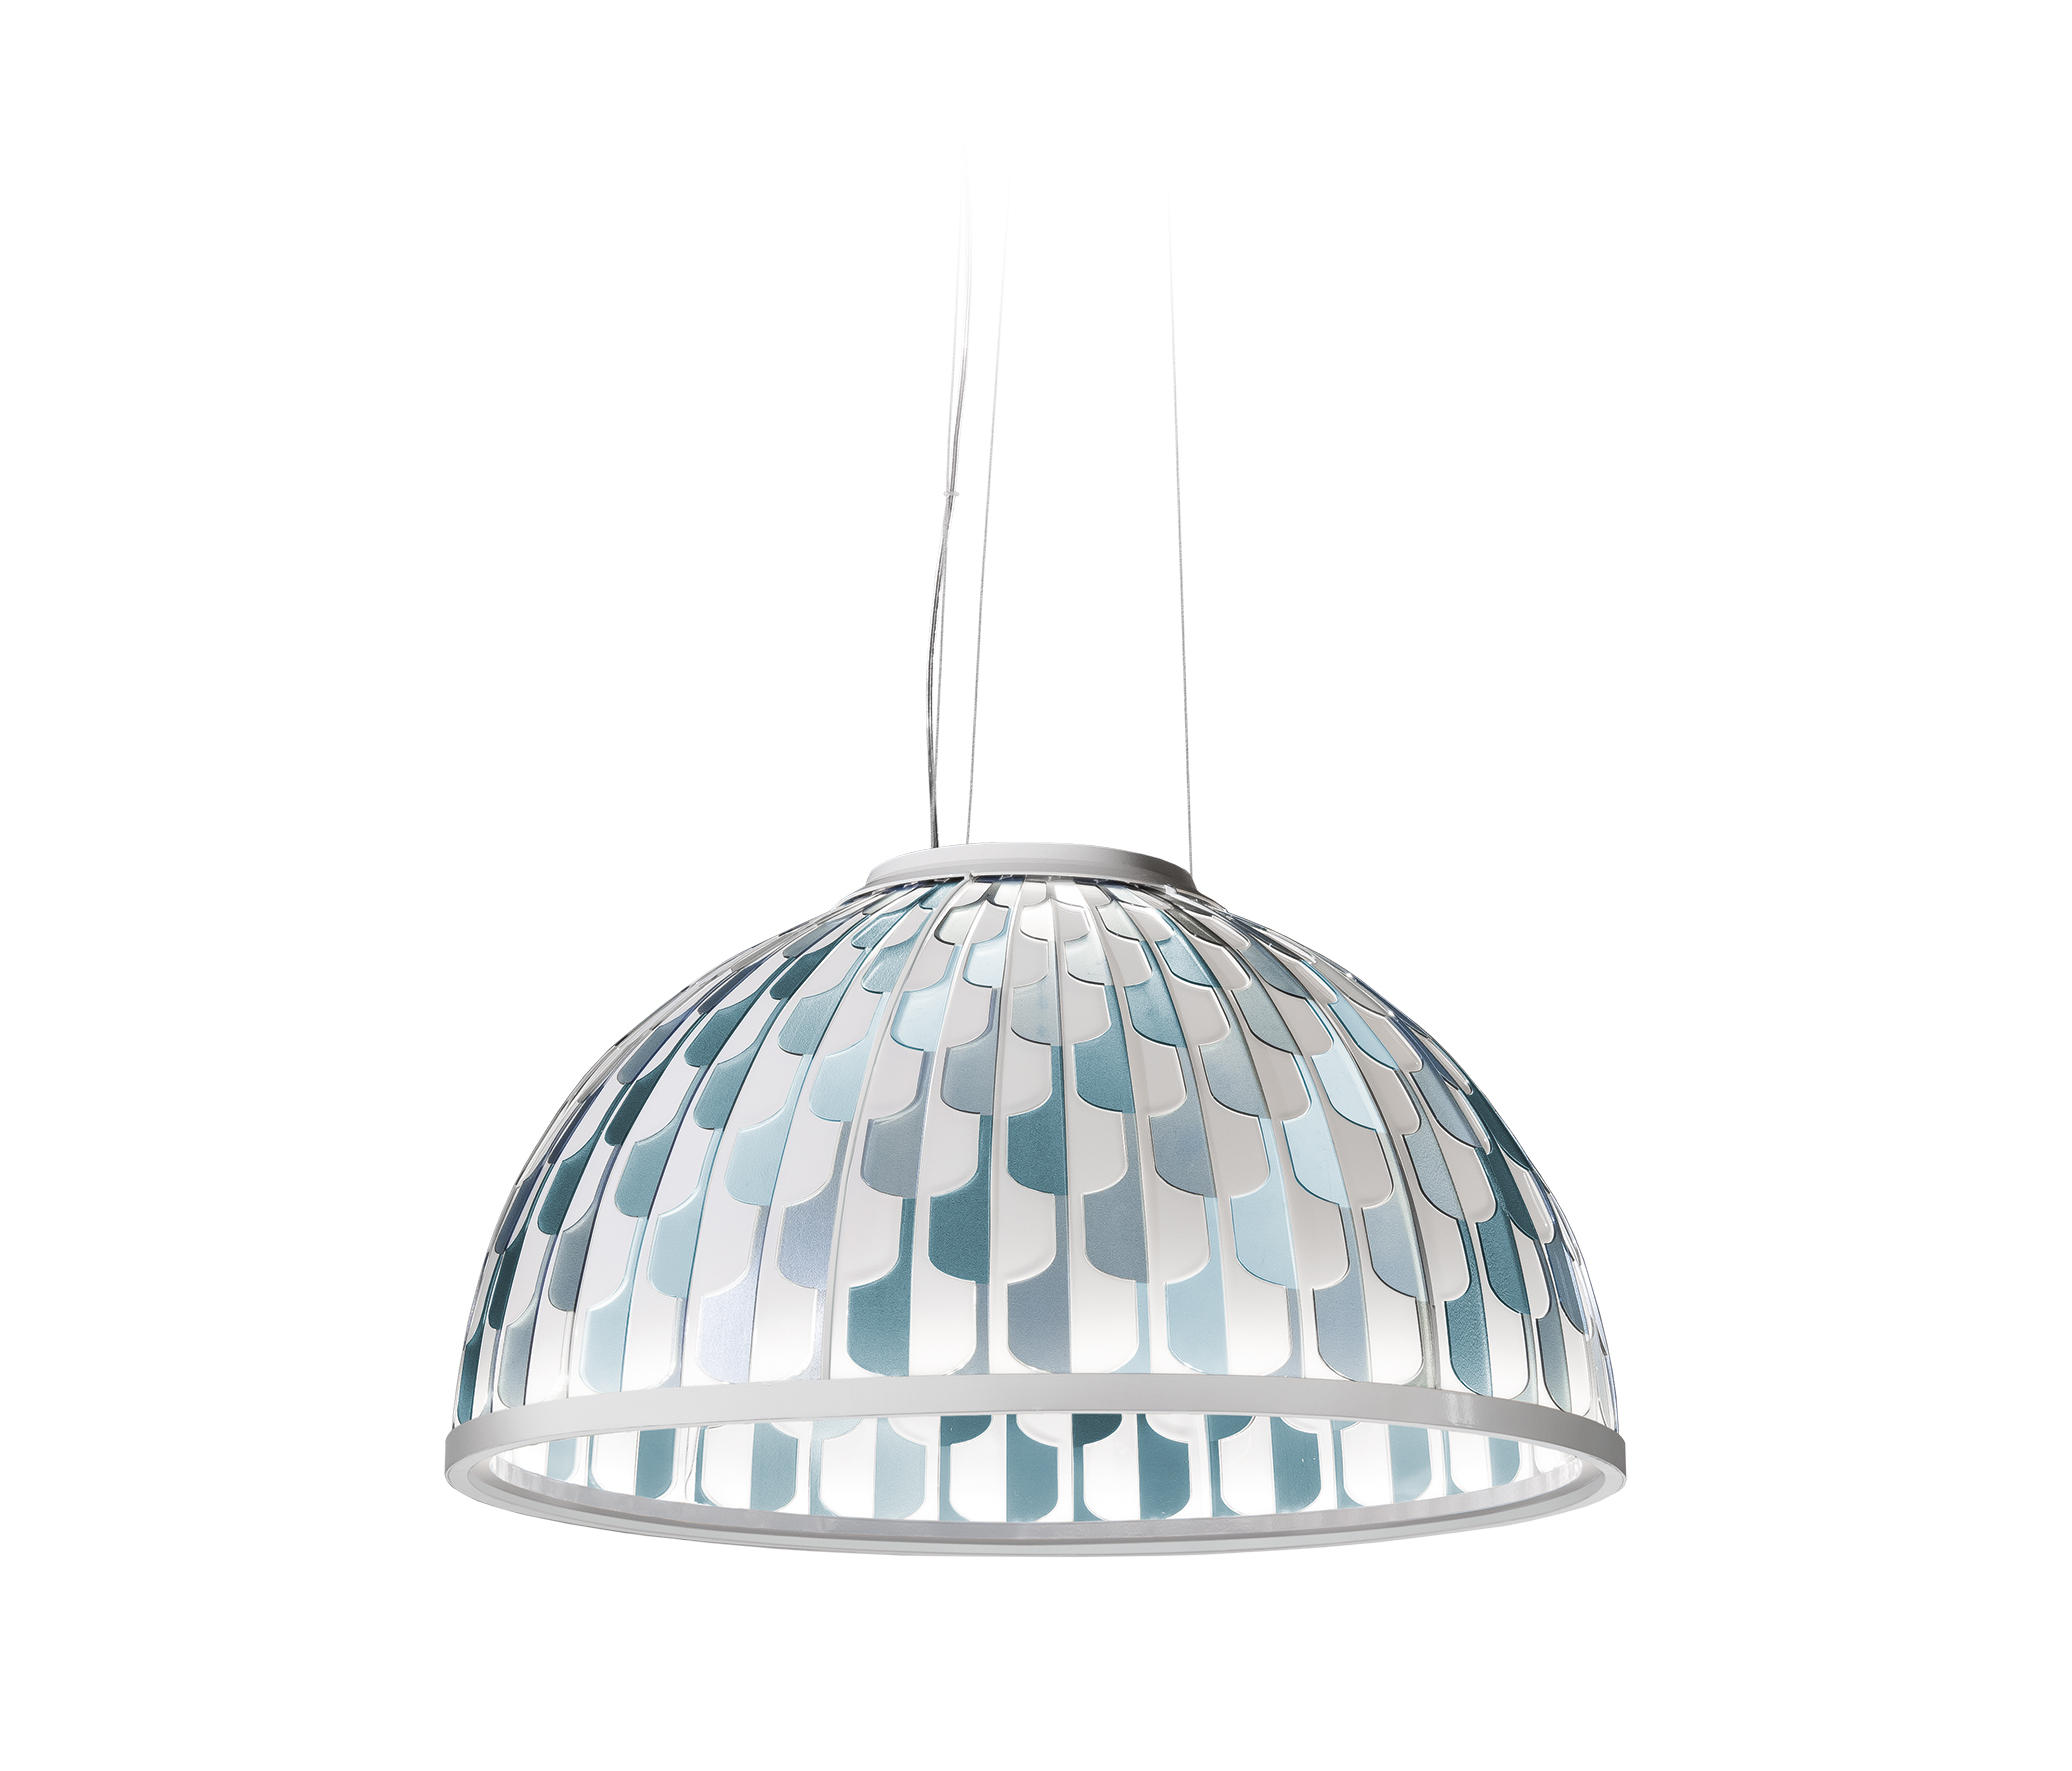 Dome Lamp by Slamp